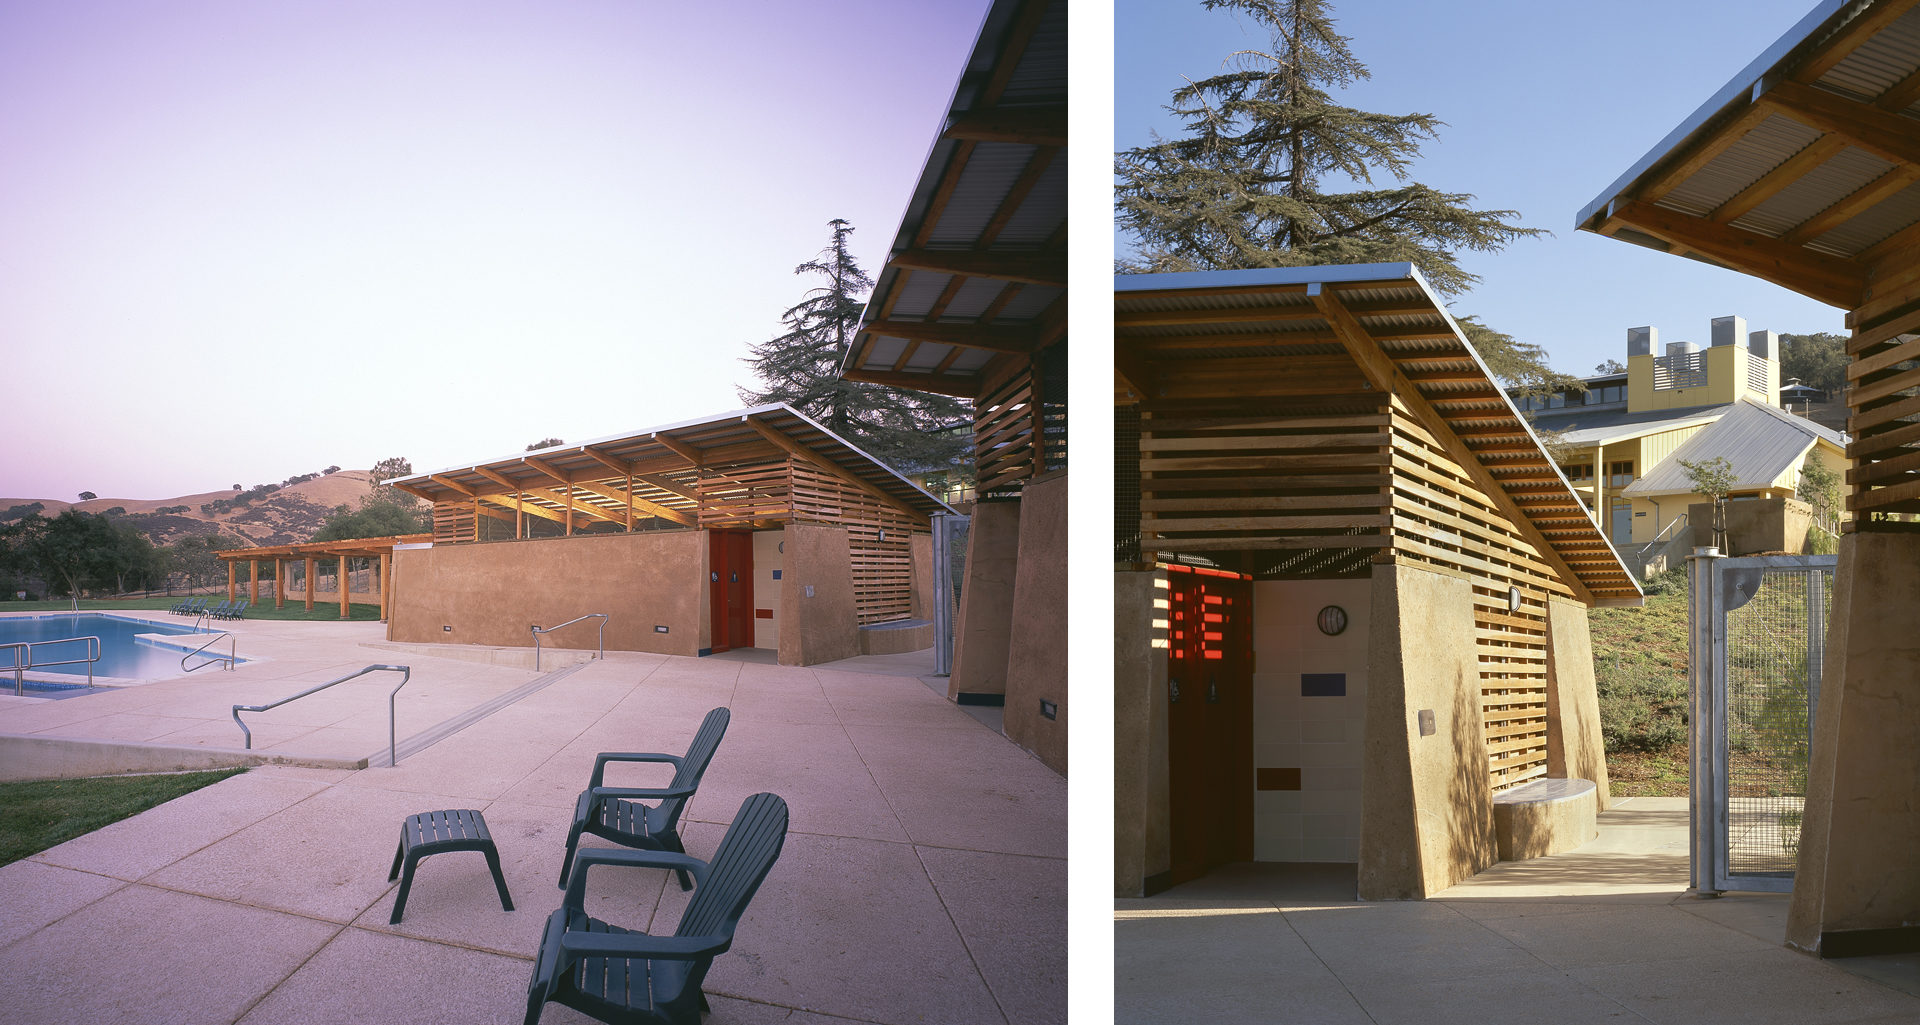 Camp Arroyo Environmental Education Center | Photo by JD Peterson